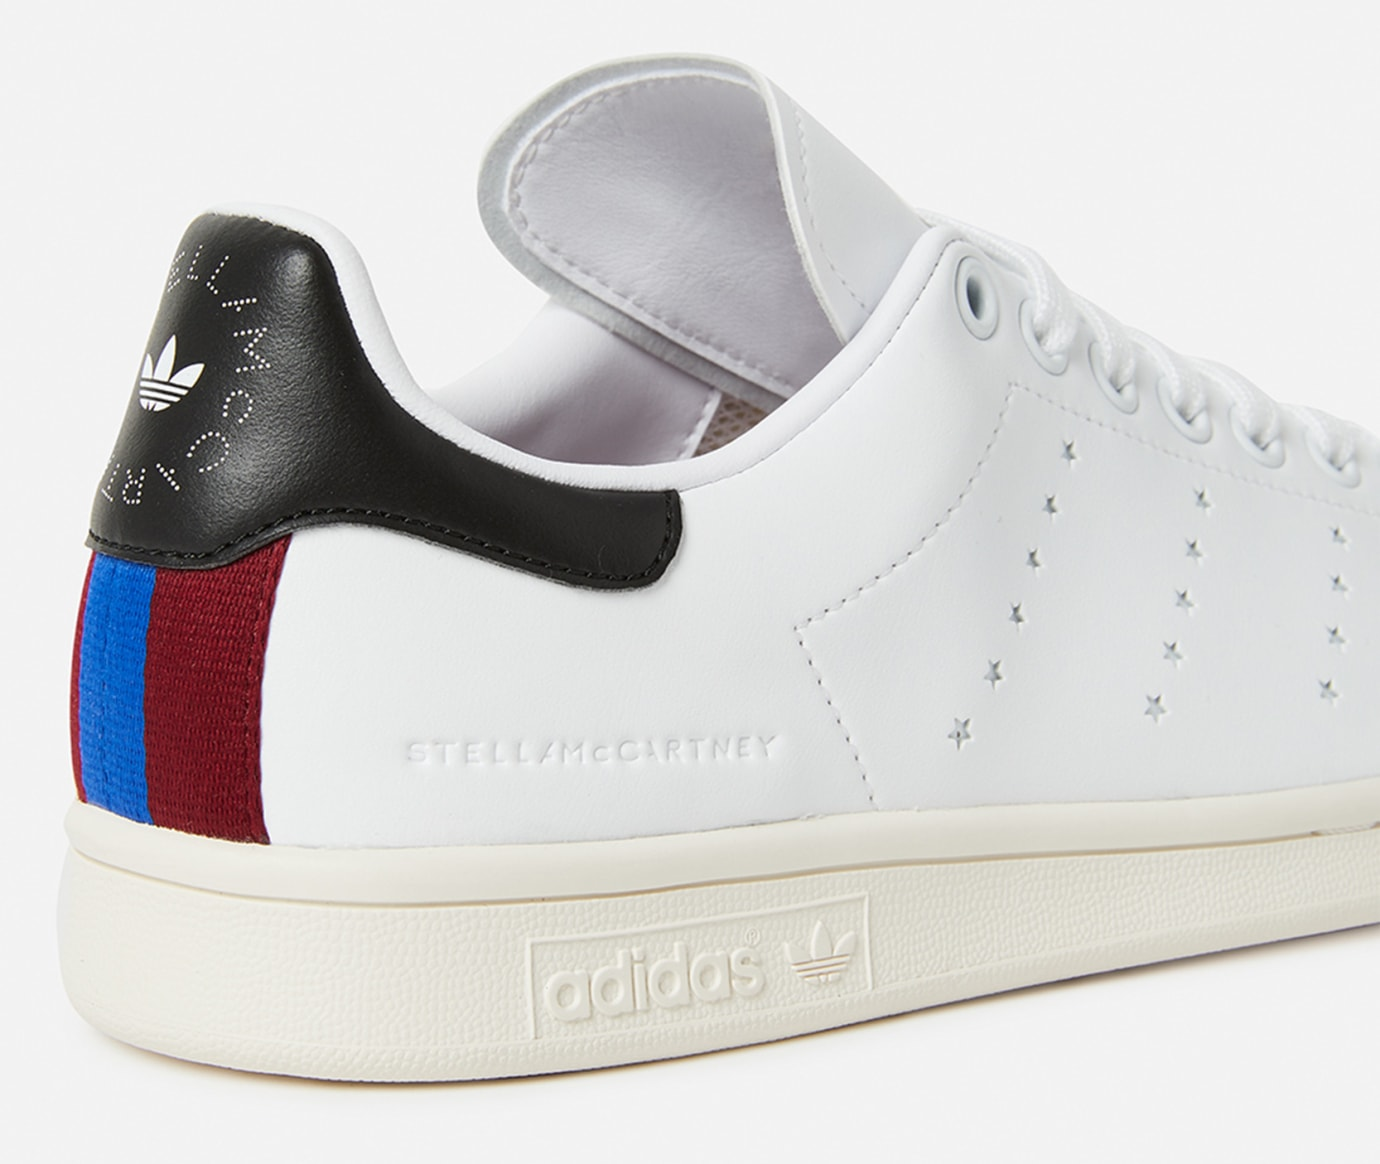 new product d0861 a97c6 Image via Stella McCartney Stella McCartney x Adidas Stan Smith (Heel  Branding)